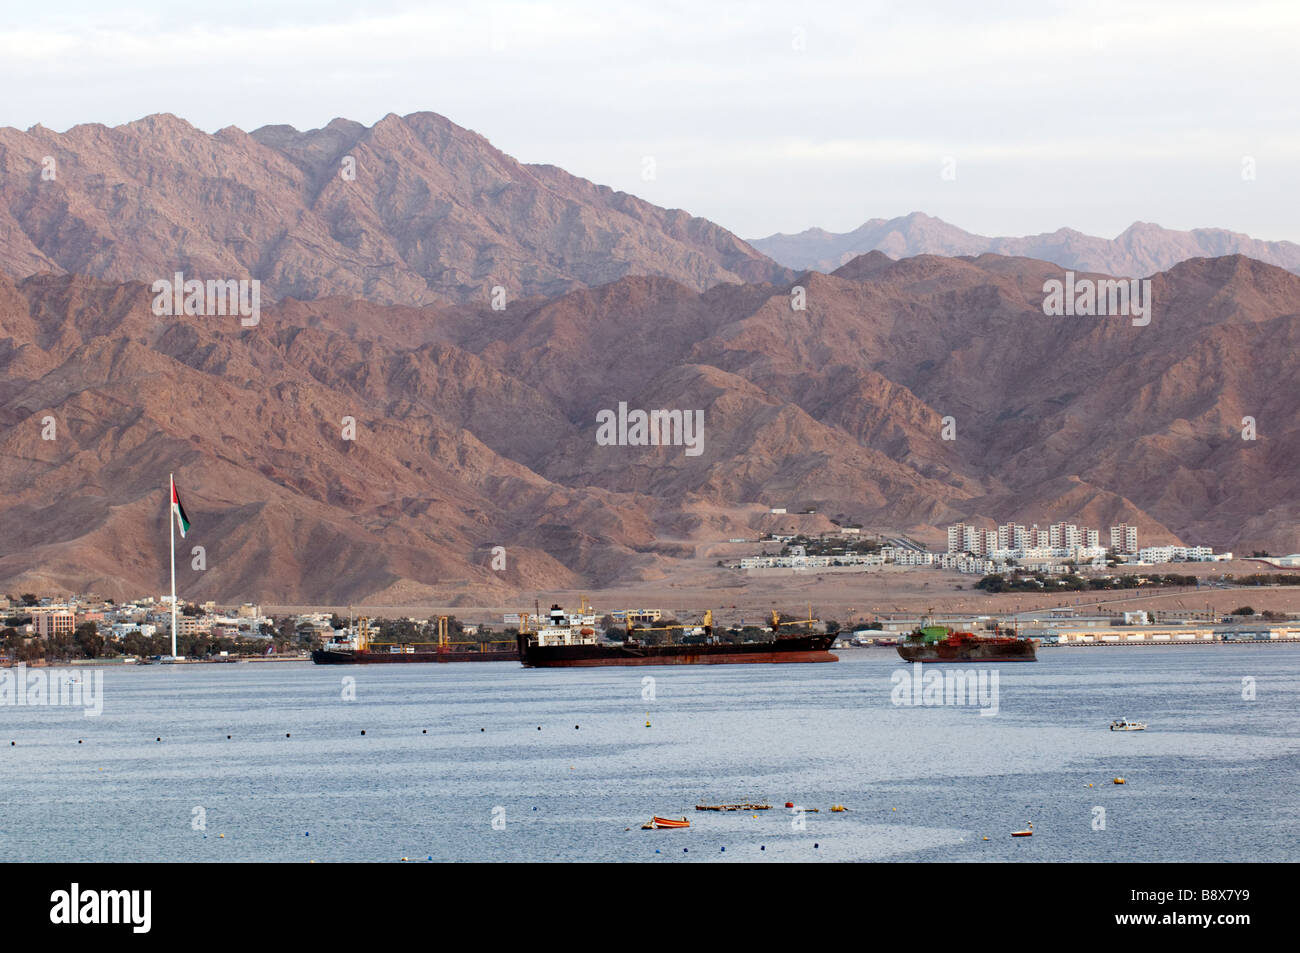 The Jordanian port cityof Aqaba at dawn, viewed from Eilat - Stock Image